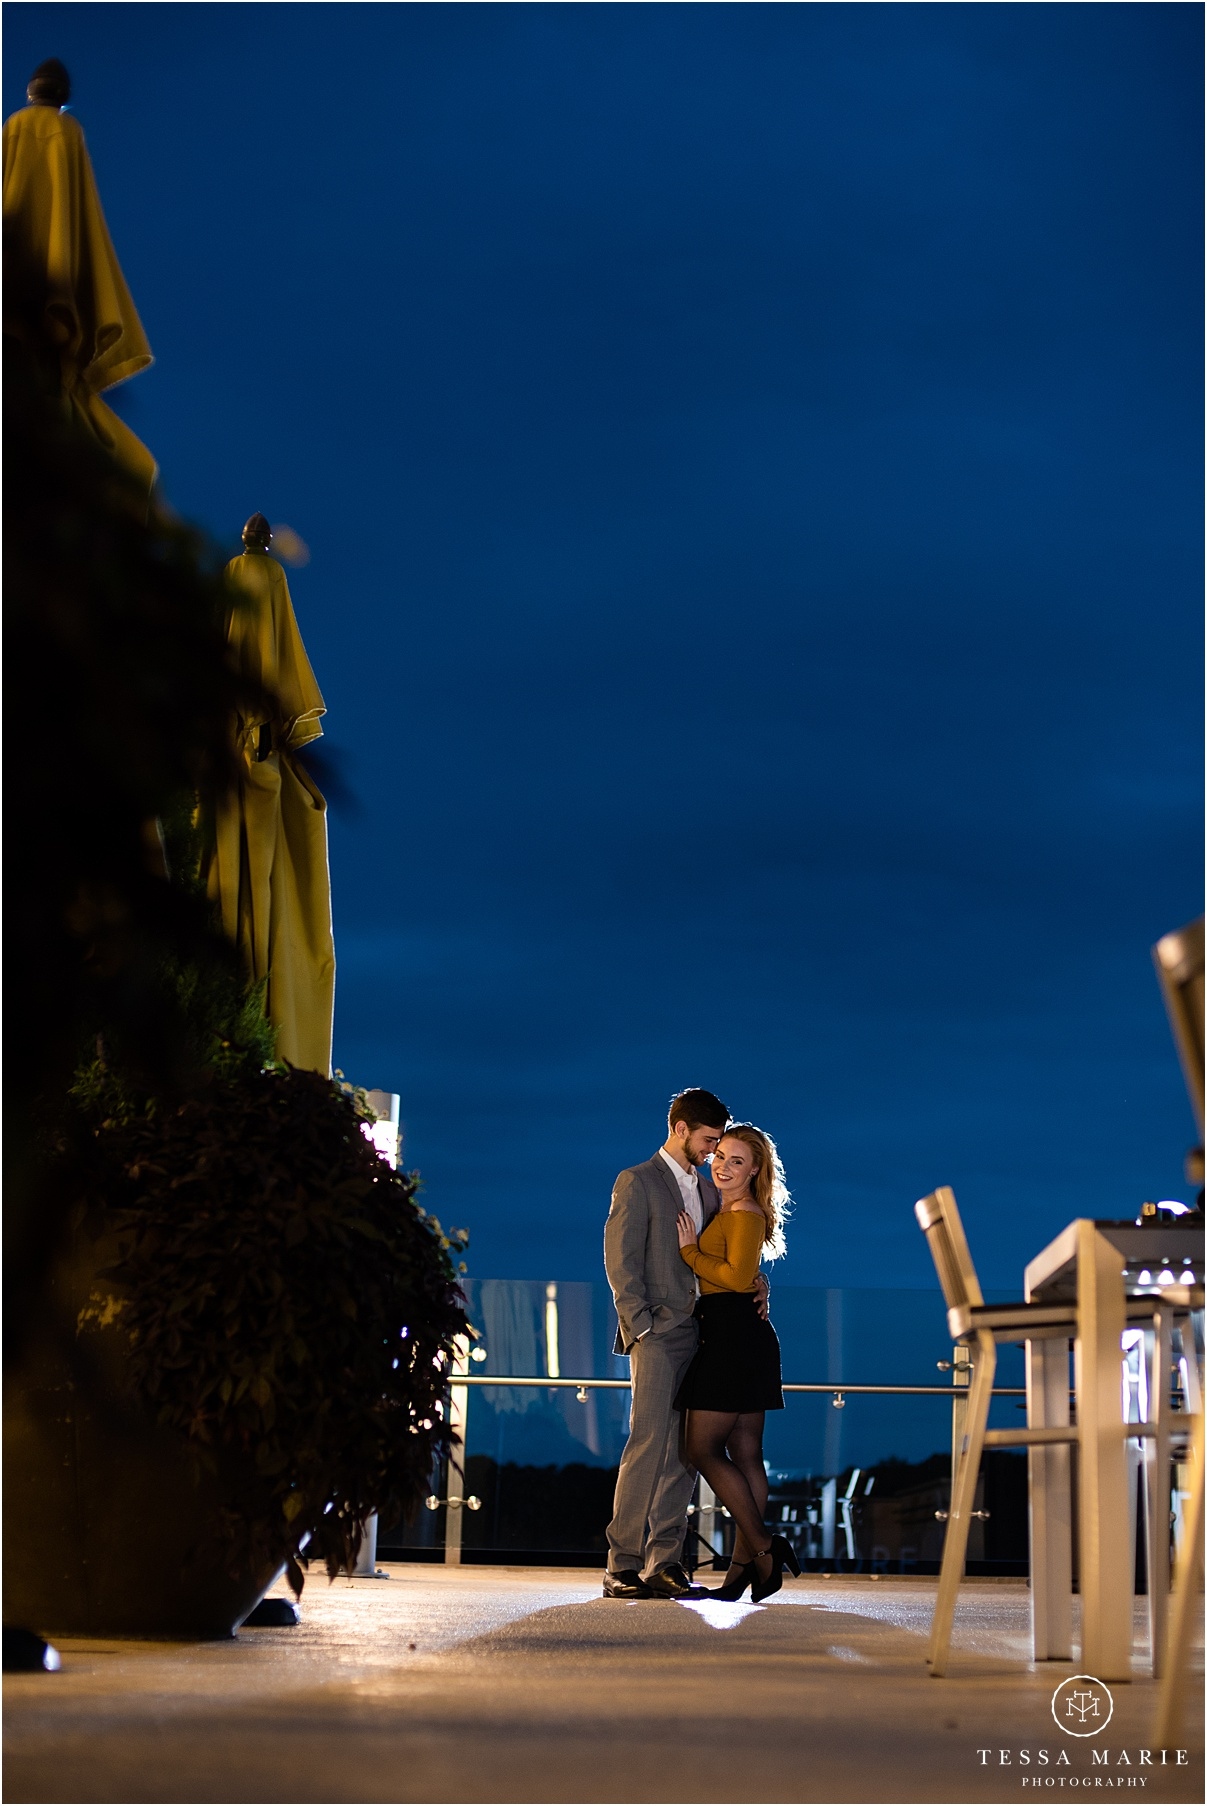 Tessa_marie_photography_wedding_photographer_engagement_pictures_river_engagement_0025.jpg